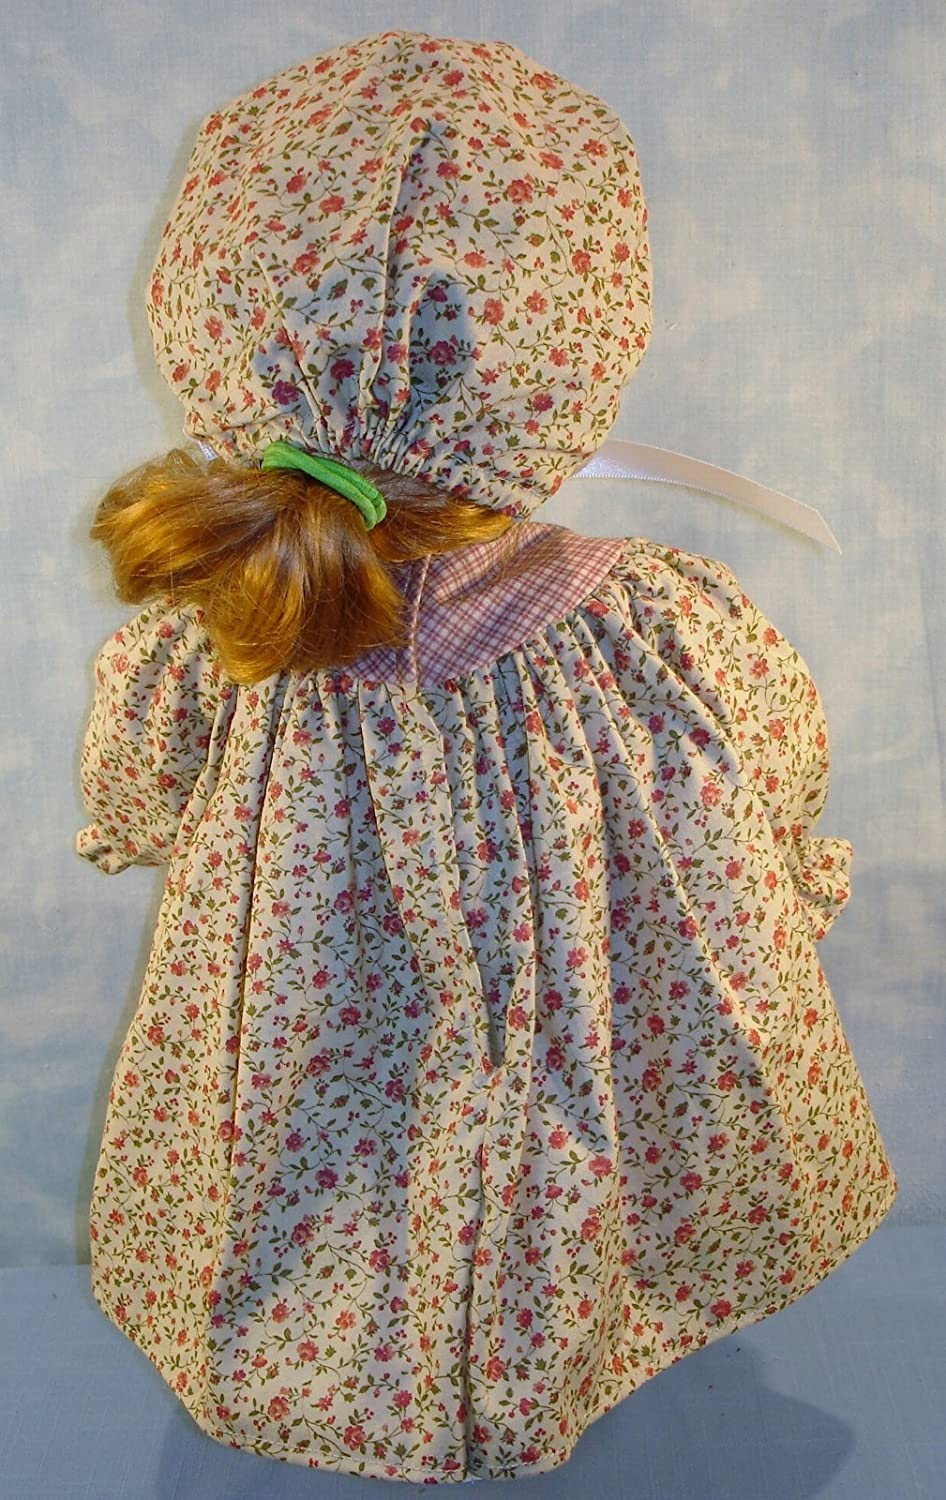 18 Inch Doll Clothes Mauve Calico Prairie Dress handmade by Jane Ellen to fit 18 inch dolls